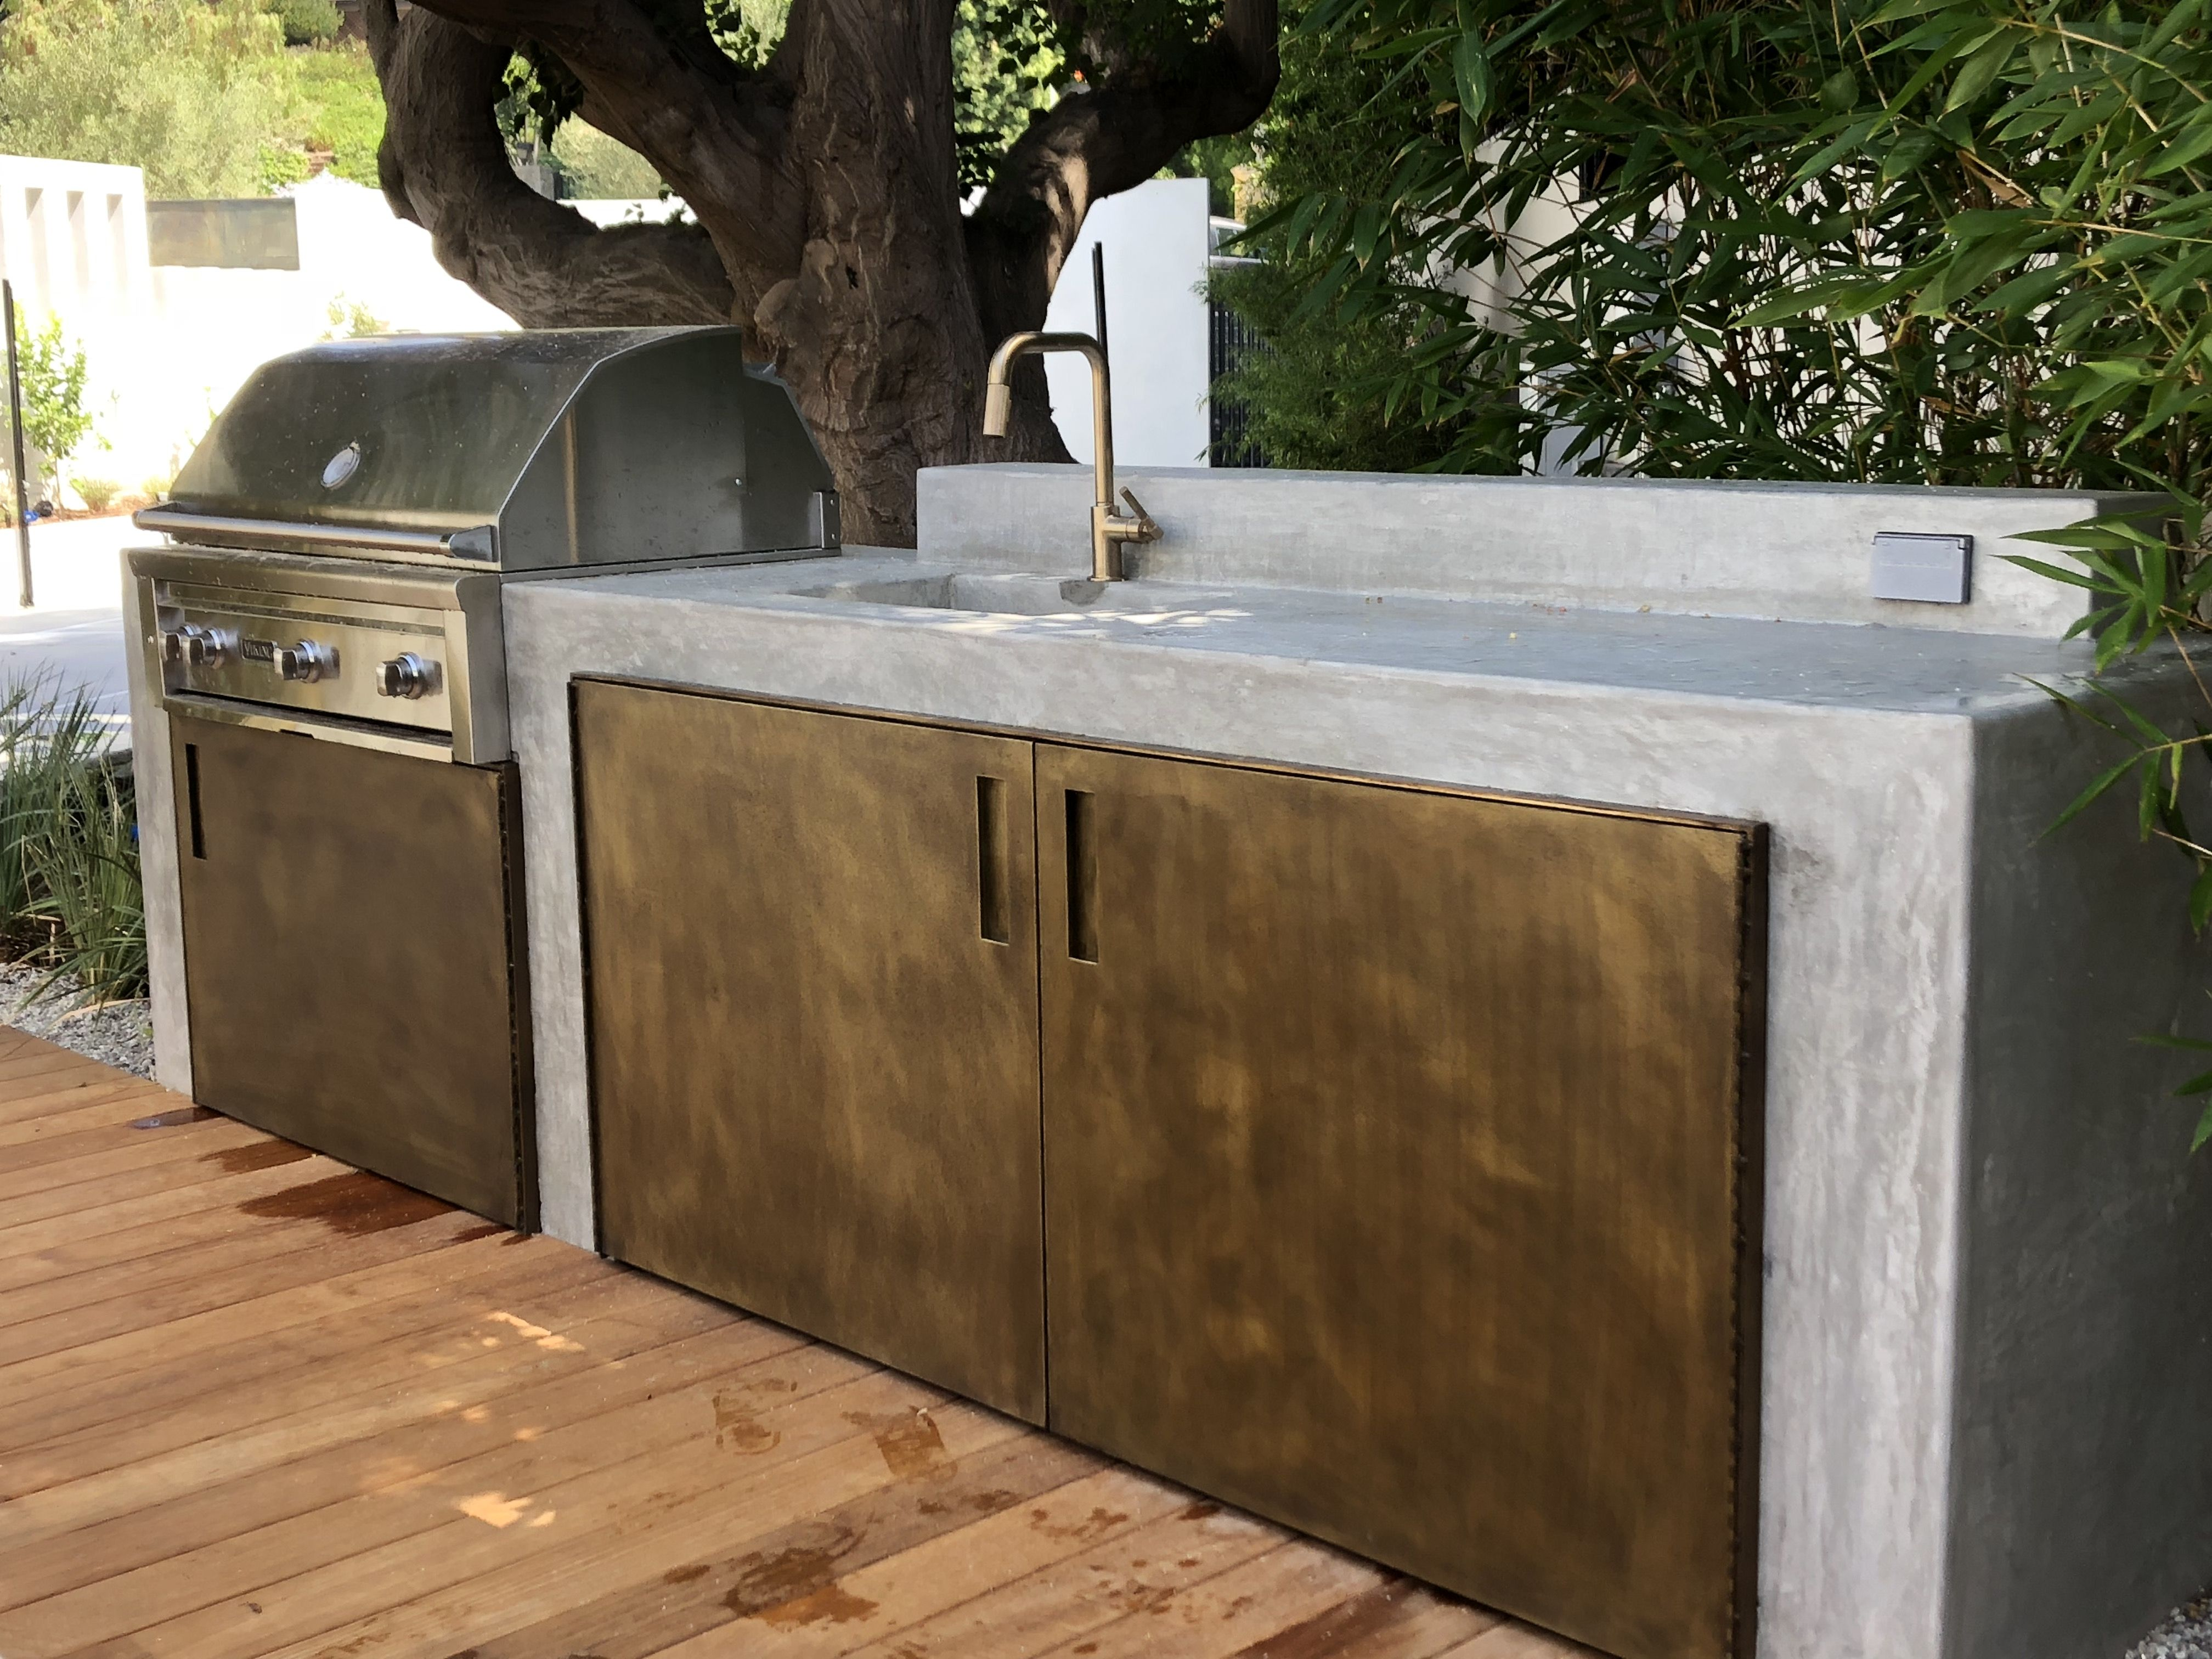 Pin On Dsma Outdoor Cooking Spaces